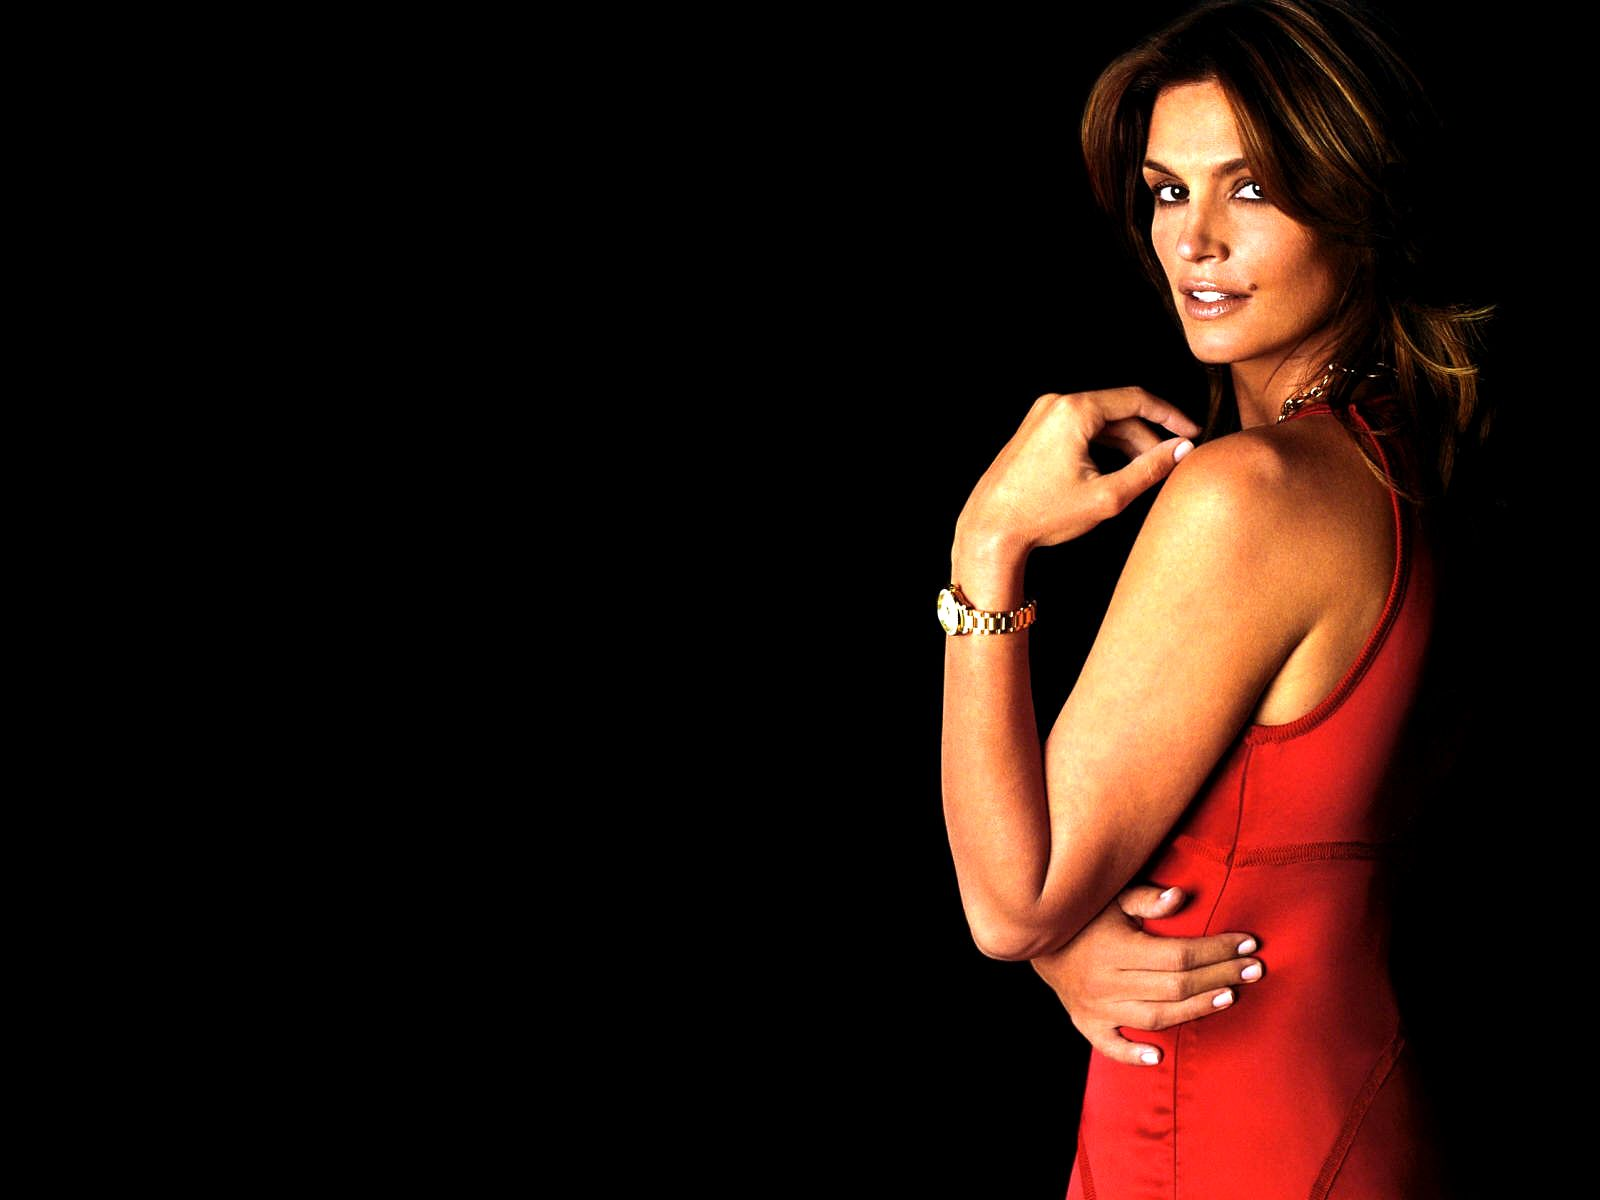 1600x1200 - Cindy Crawford Wallpapers 8